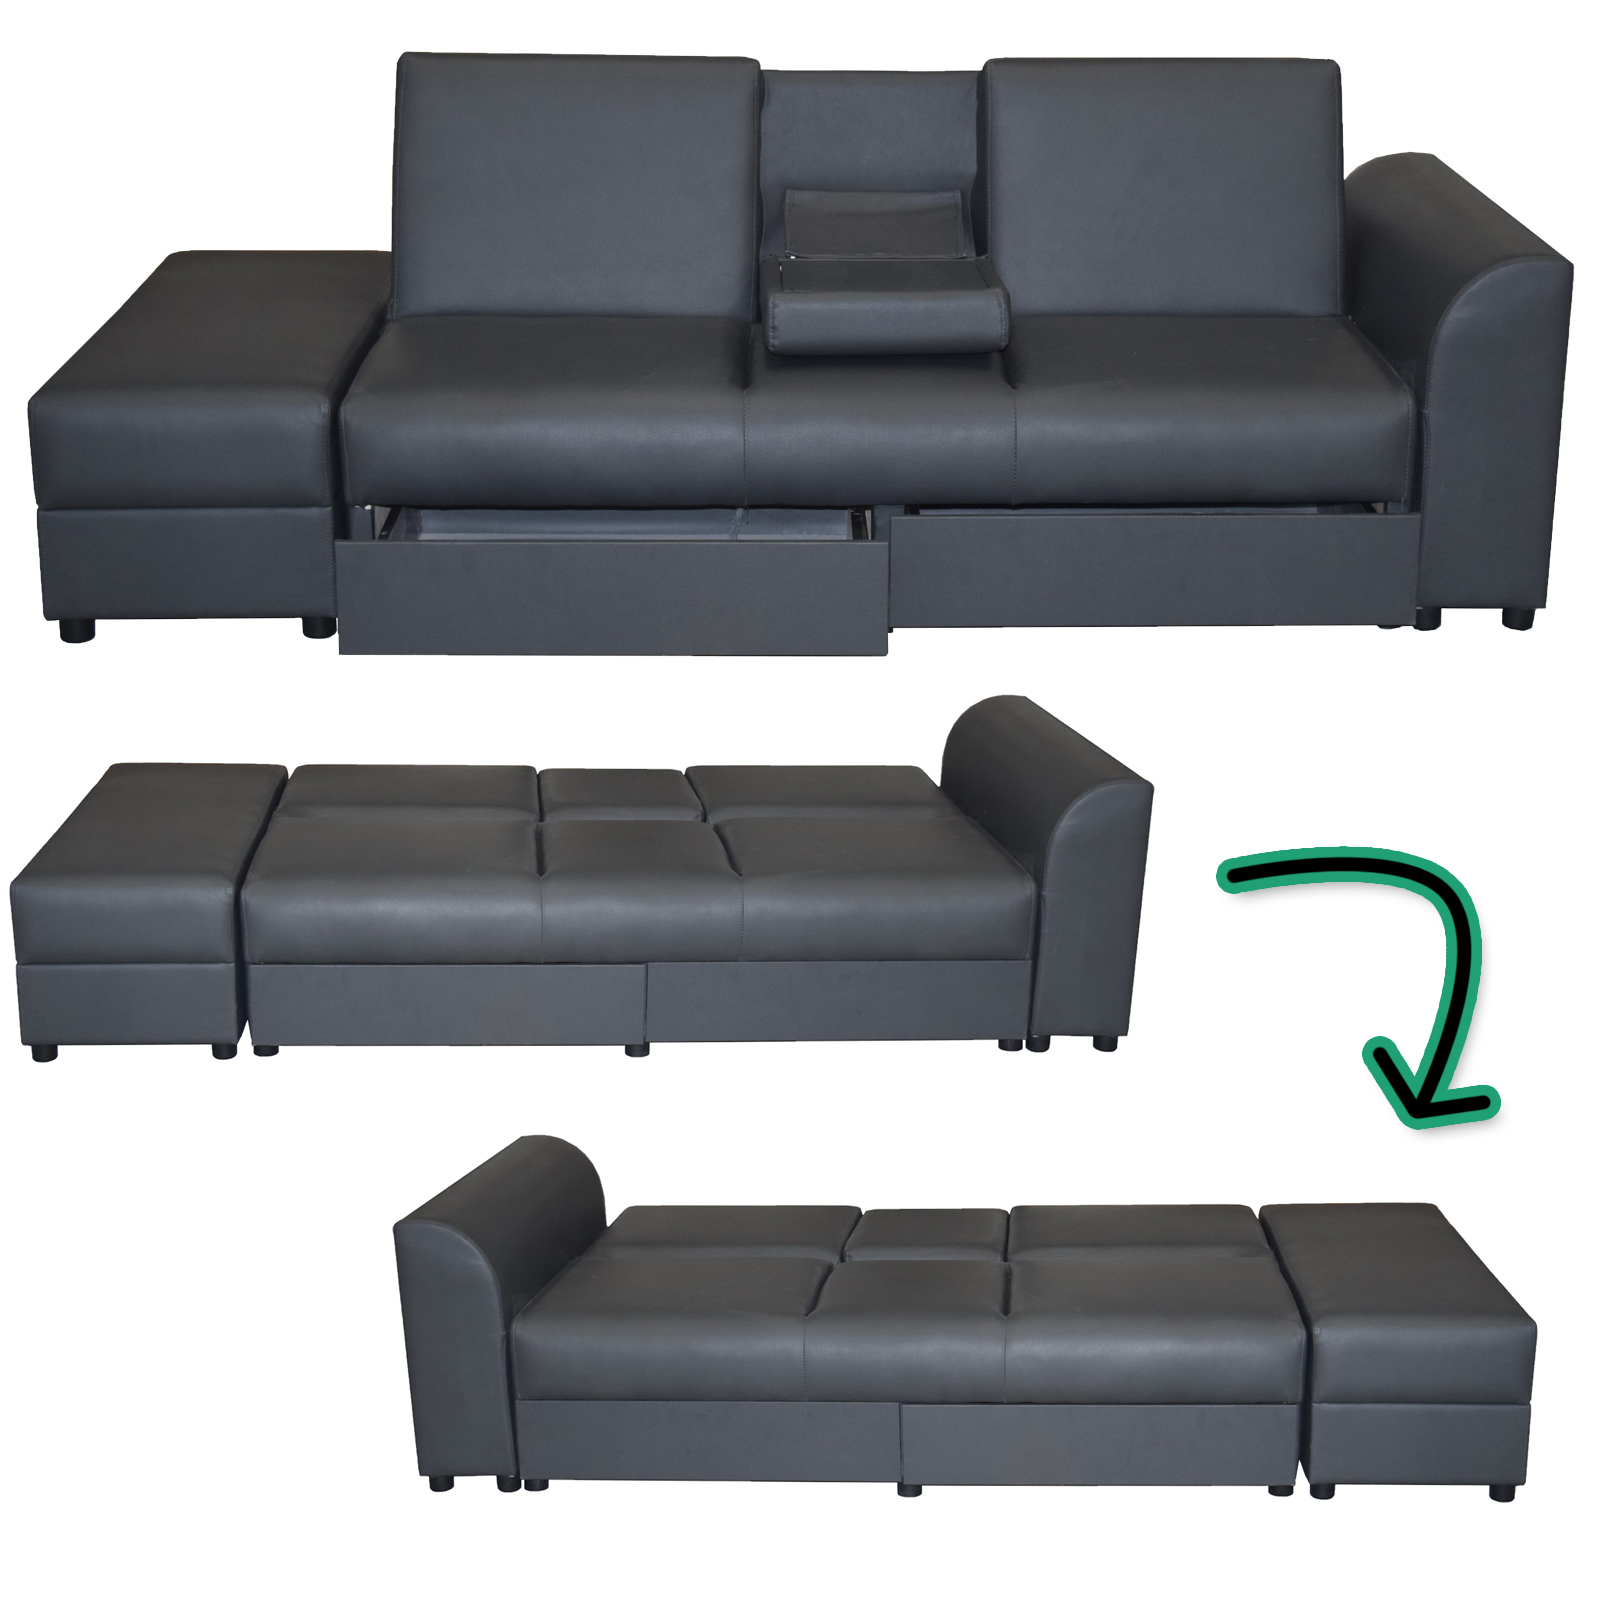 sofa cairo schlafsofa klappsofa kunstleder couch schlafcouch klappcouch garnitur ebay. Black Bedroom Furniture Sets. Home Design Ideas